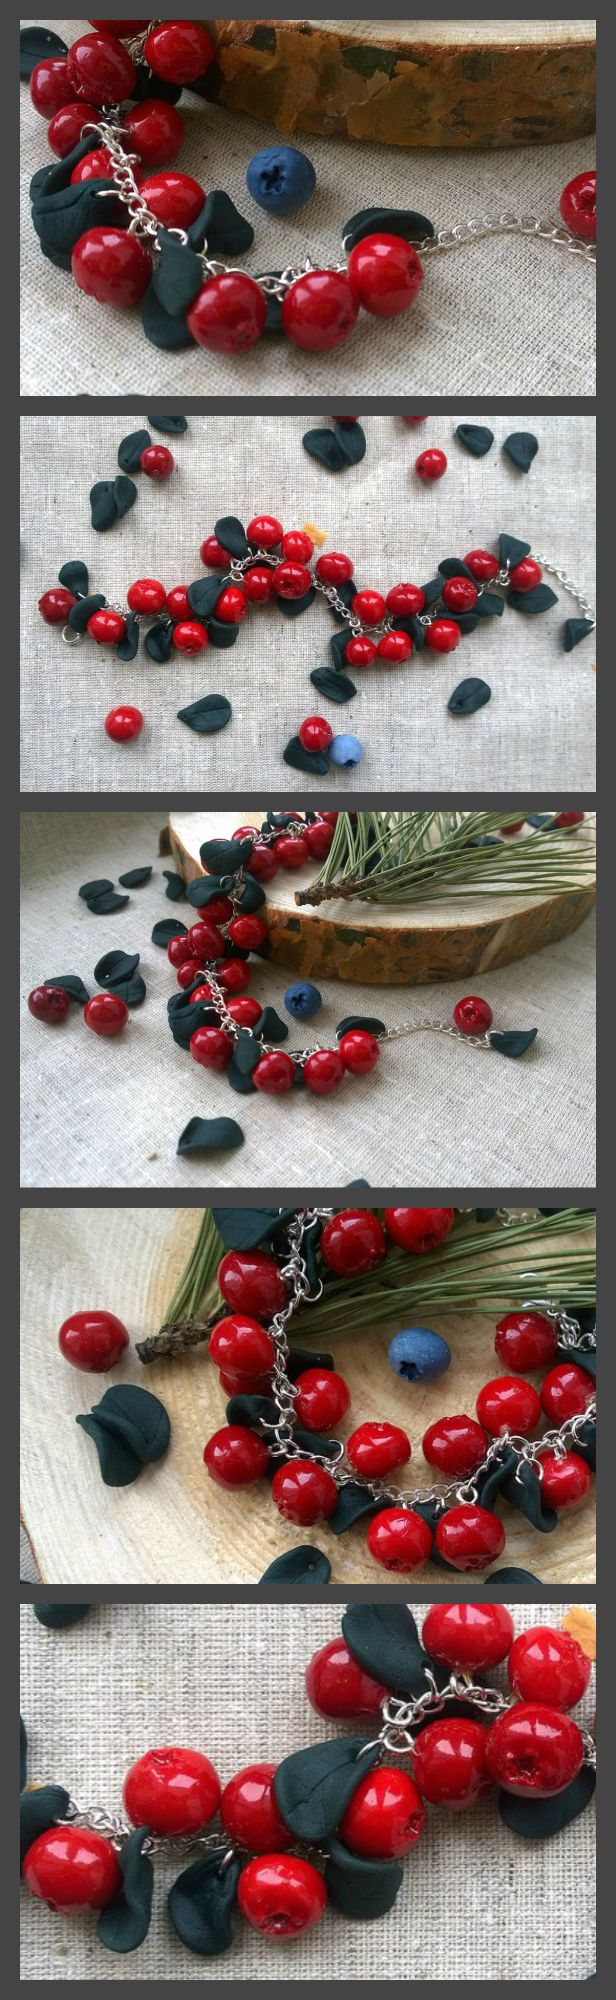 #red #bracelet #berries #berry #cranberry #polymerclay #fimo #sculpey #miniature #art #pine #wood #follow #handmade #craft #etsy #etsyhandmade #instahandmade #forest #fashion #jewelry #summer #earrings